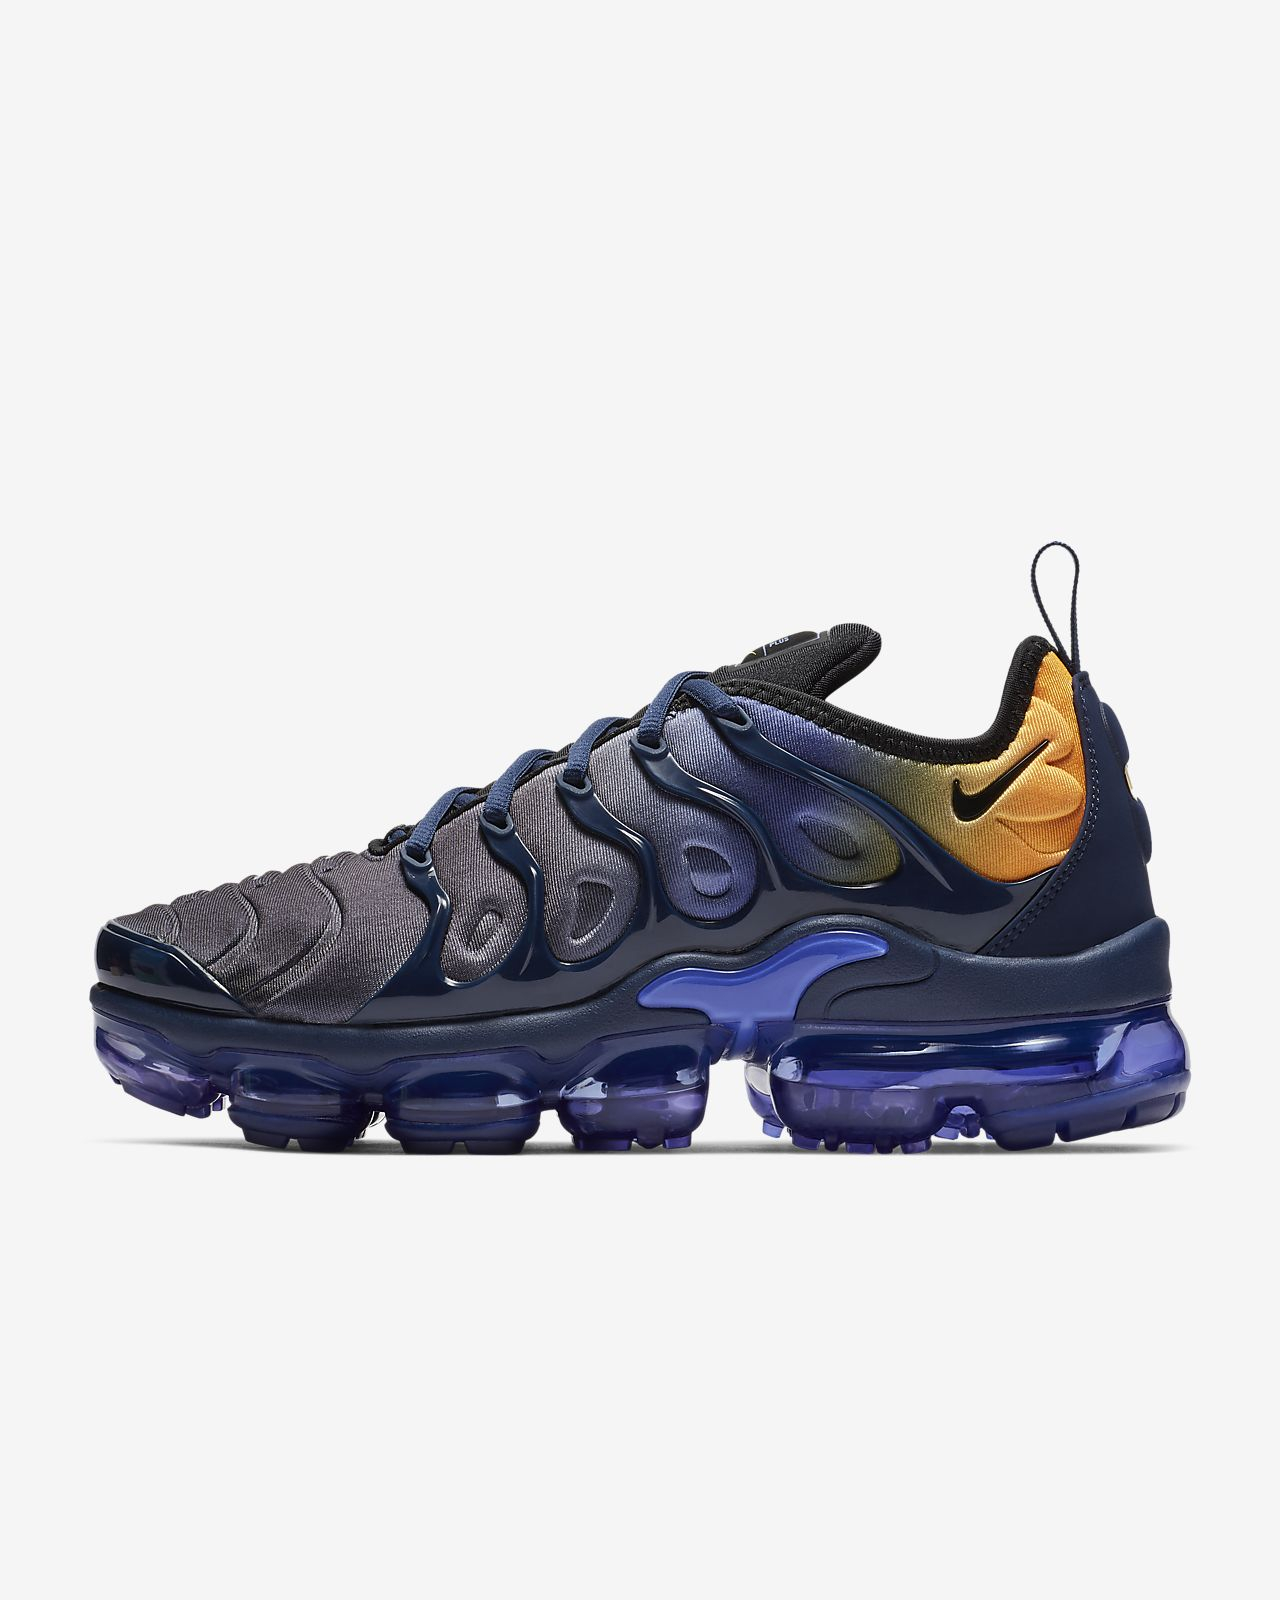 7b084206f28 Nike Air VaporMax Plus Women s Shoe. Nike.com